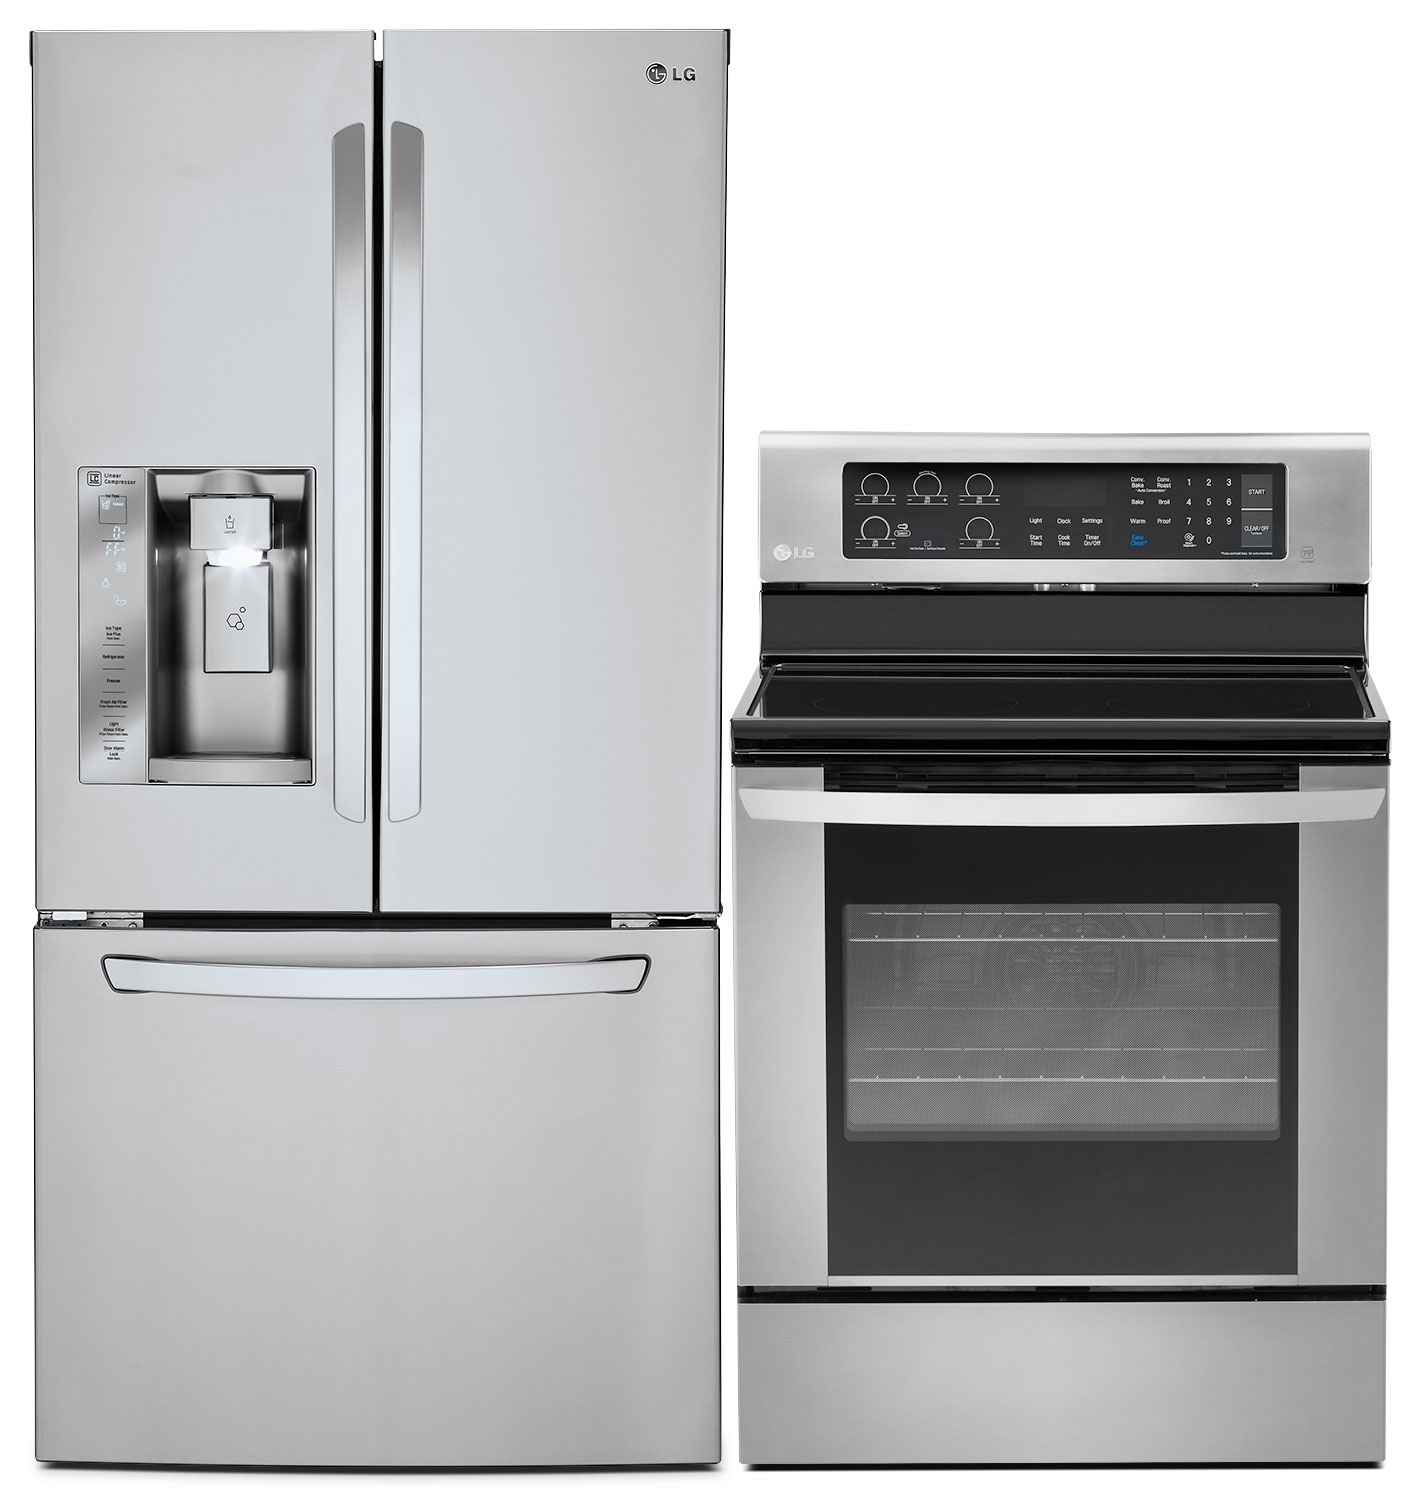 LG 24.2 Cu. Ft. French-Door Refrigerator and 6.3 Cu. Ft. Electric Convection Range